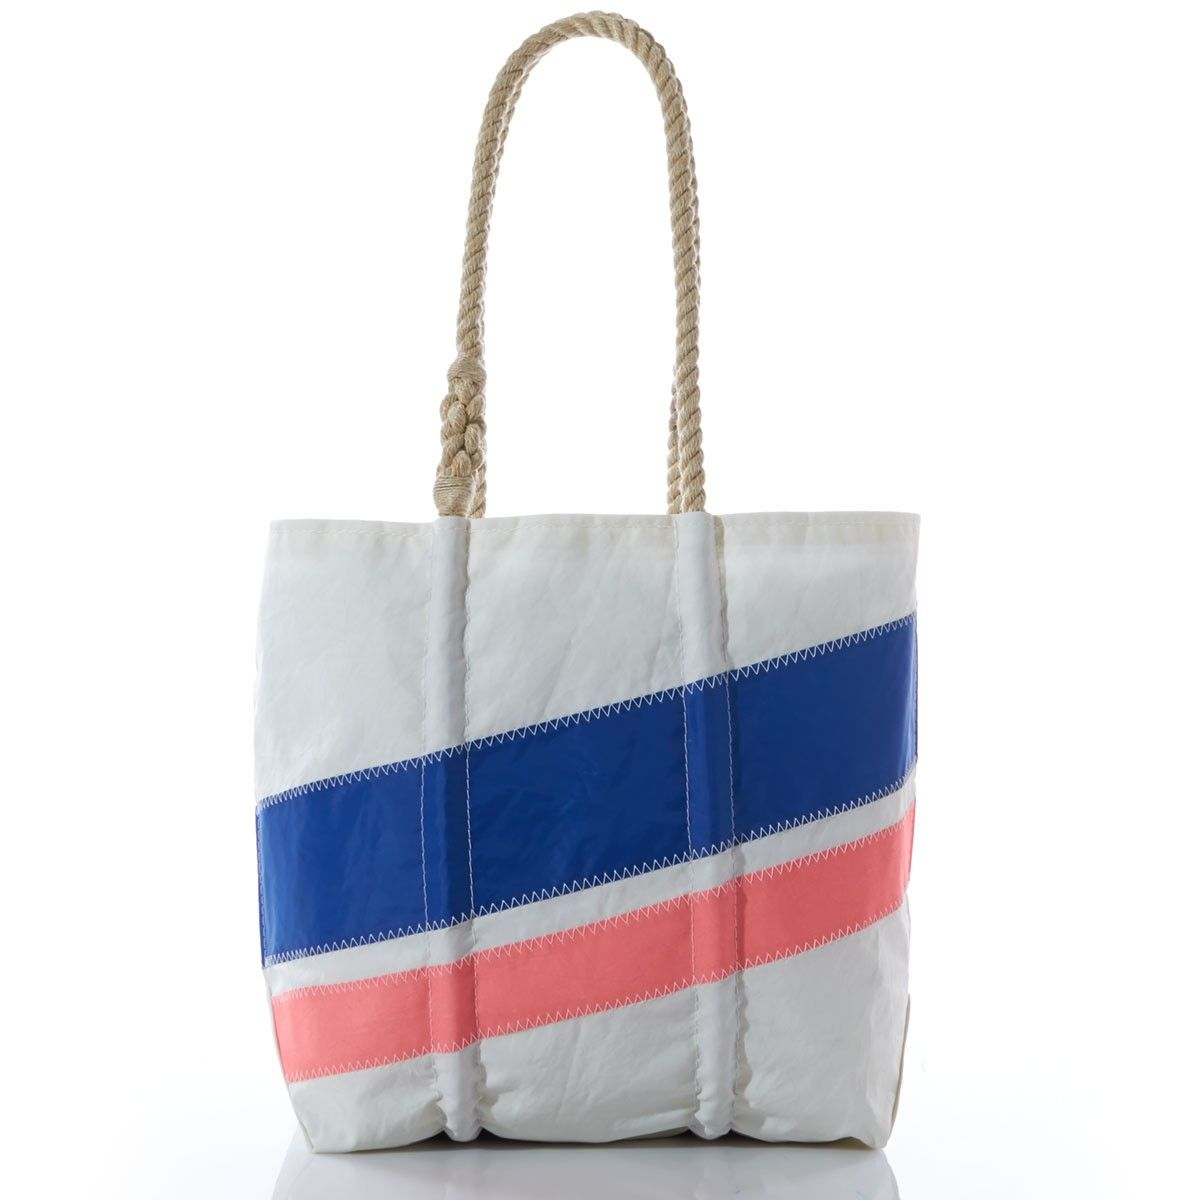 Medium Royal and Coral Diagonal Stripe Tote - Hand Crafted from Recycled Sails.